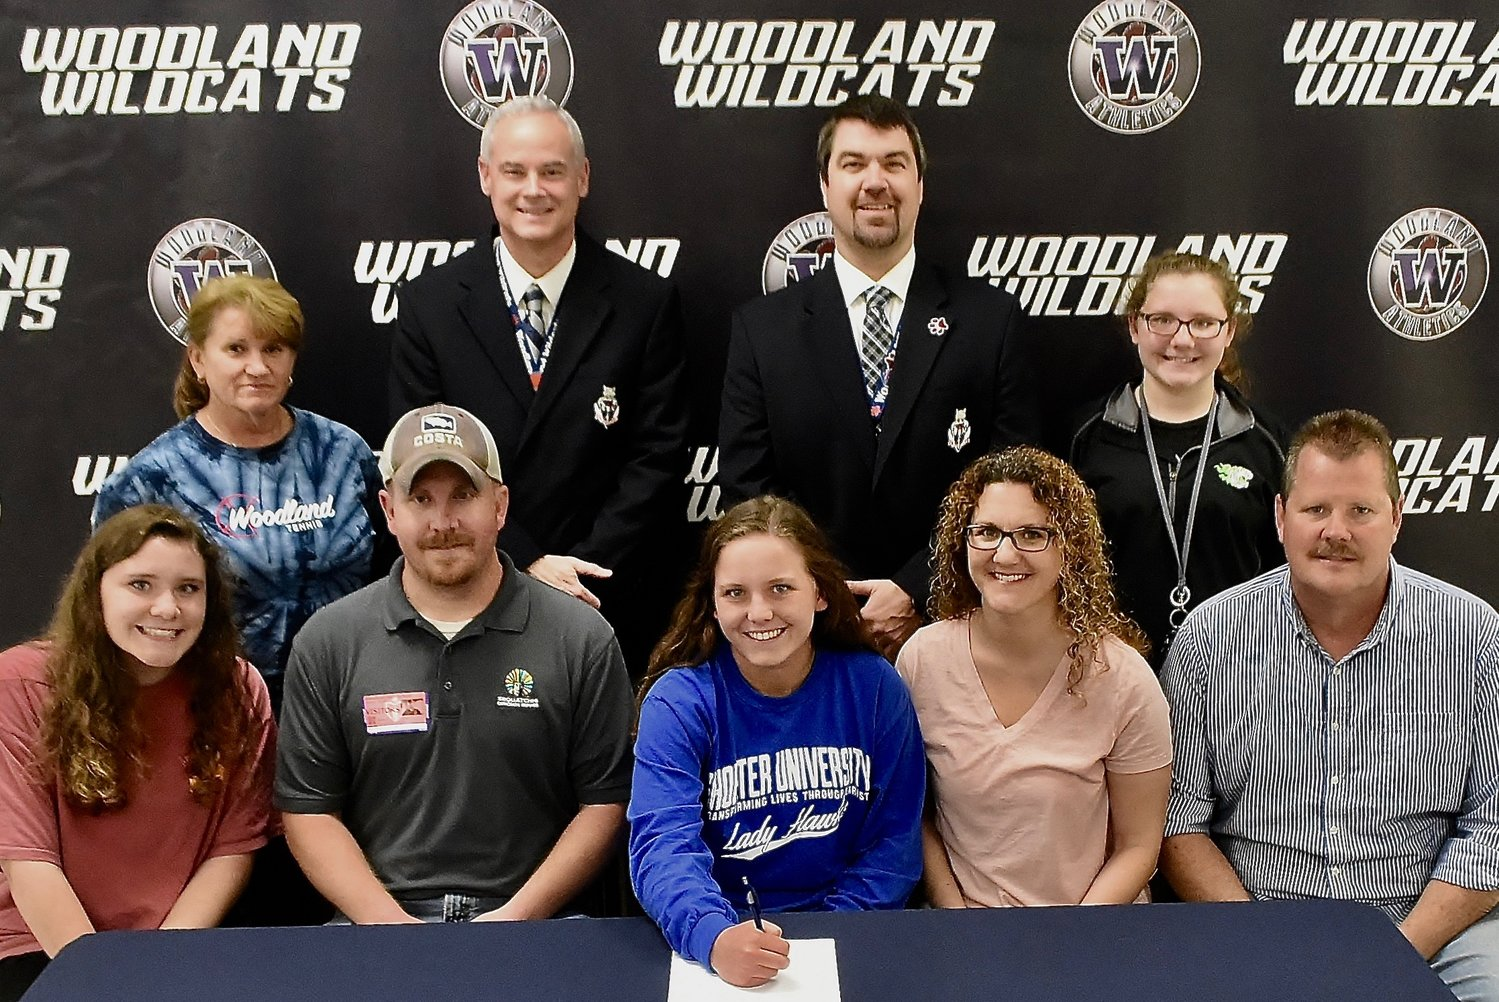 Woodland High senior Breanna Shook recently signed to play tennis at Shorter University in Rome. On hand for the signing were, from left, front row, MaKayla Dowdy, sister; Jeremy Shook, father; Lori Dowdy, mother; Kenneth Dowdy, stepfather; back row, Beth Heath, WHS head tennis coach; Wes Dickey, WHS principal; John Howard, WHS athletic director; and Ashlyn Dowdy, sister.